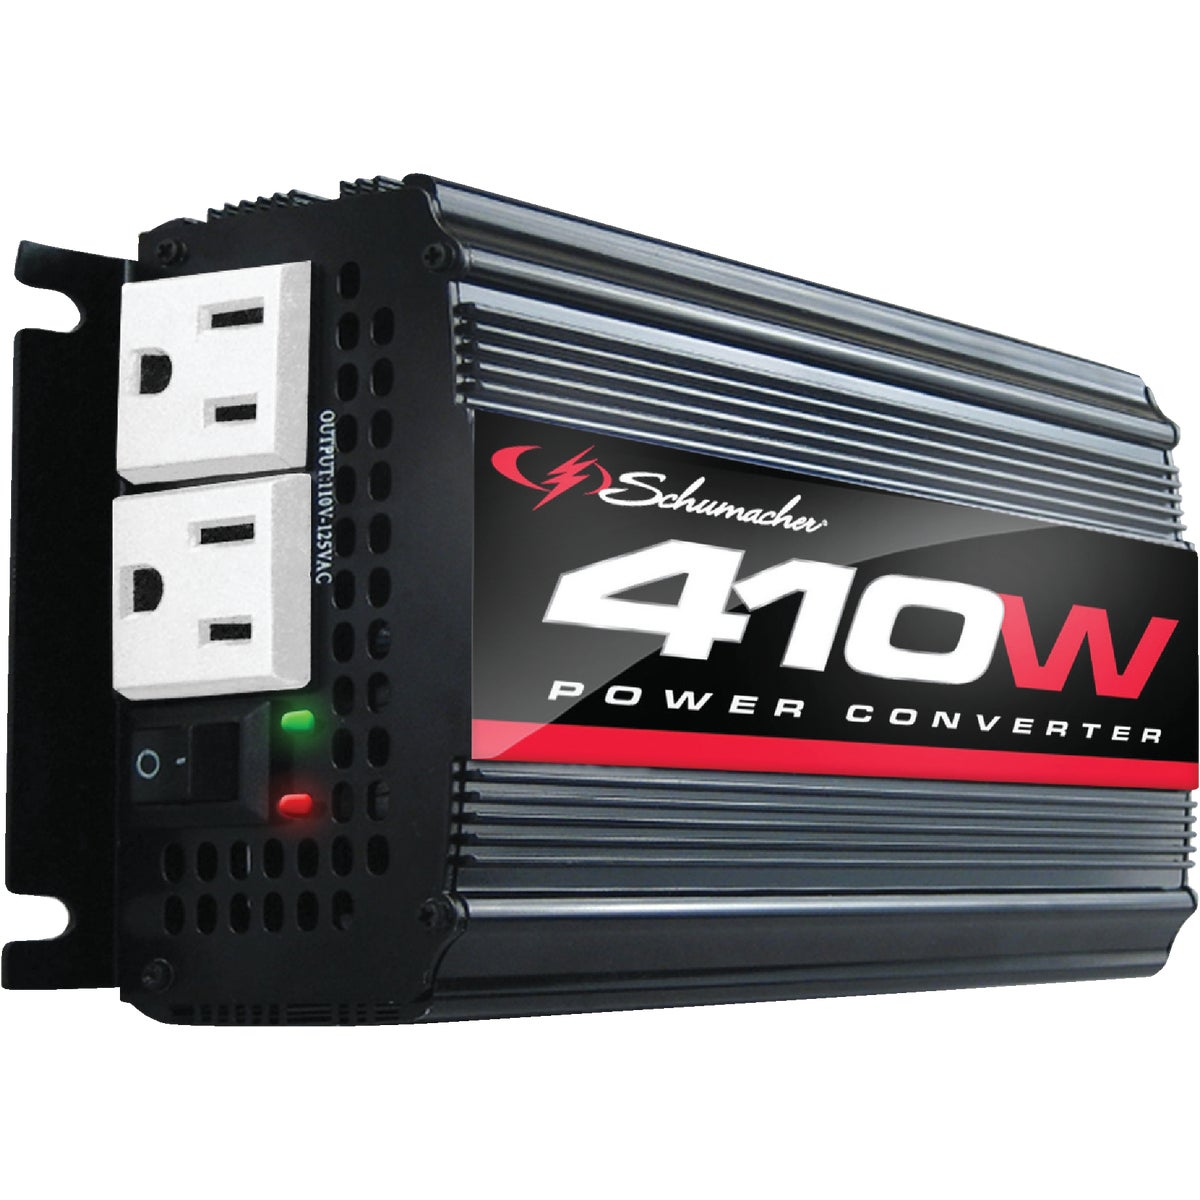 400W POWER INVERTER